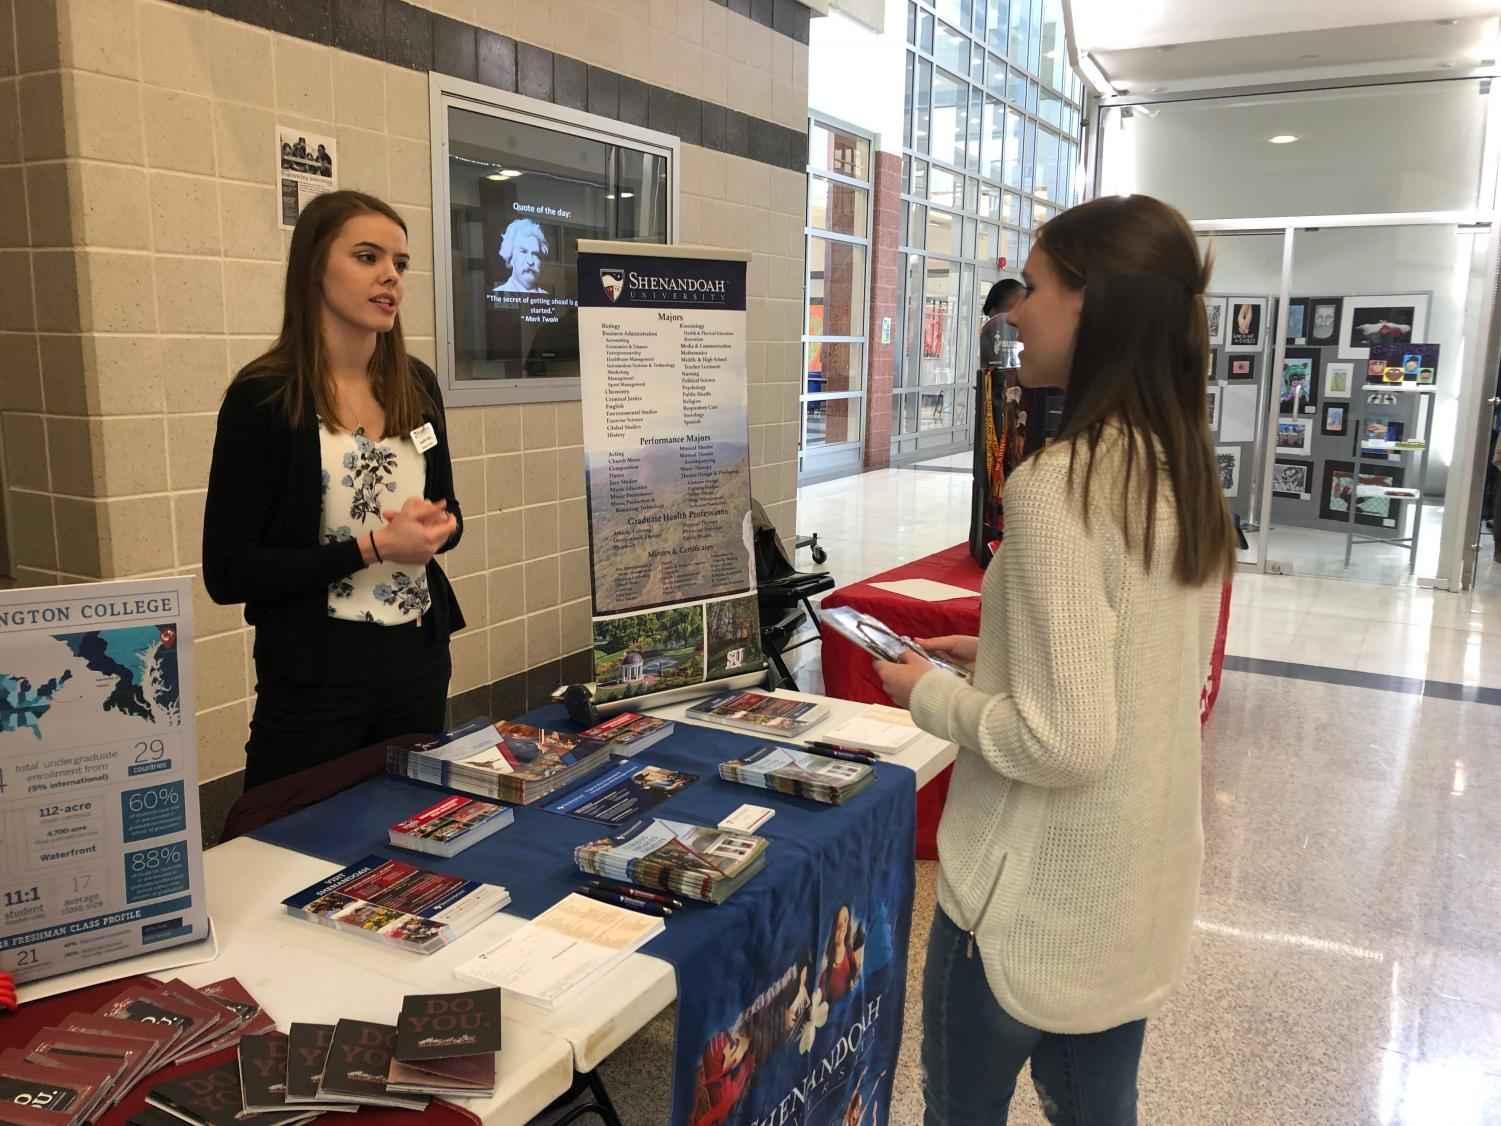 Sierra Rossman talked to Admissions Counselor Jennifer Reid from Shenandoah University.